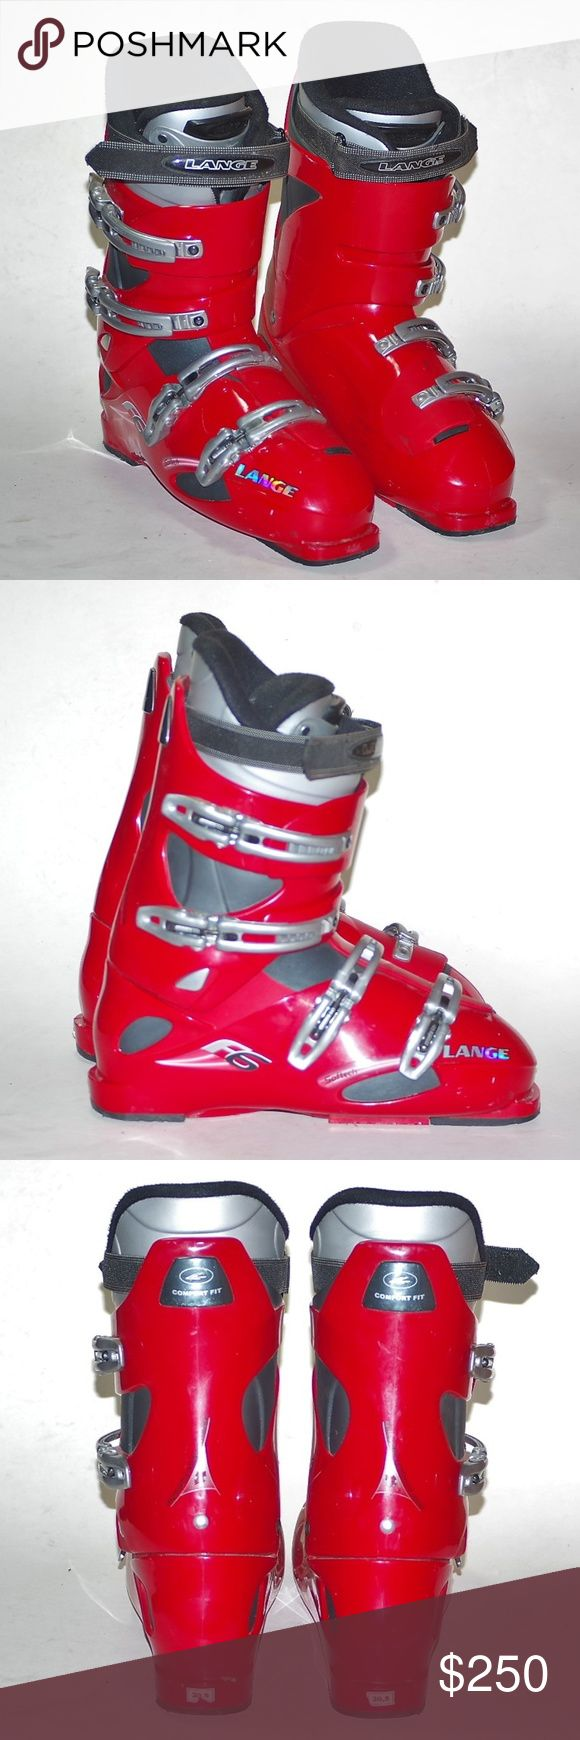 LANGE Frame6 Softech Ski Boots Size 30.5 SALE EUC LANGE Frame6 Softech Ski Boots Size 30.5 SALE EUC LANGE FRAME 6 F6 Ski Boots Size 30.5( According to PeterGlenn's website this converts to USA Mens 12.5 (do some research for fit) Last photo shows online review Used 2 times I have additional photos if needed! What a great Christmas gift at a fraction of retail! Save some bucks for more ski trips! Would look great with your Dale of Norway Ski sweater! LANGE F6 Softech Ski Boots Shoes Rain…